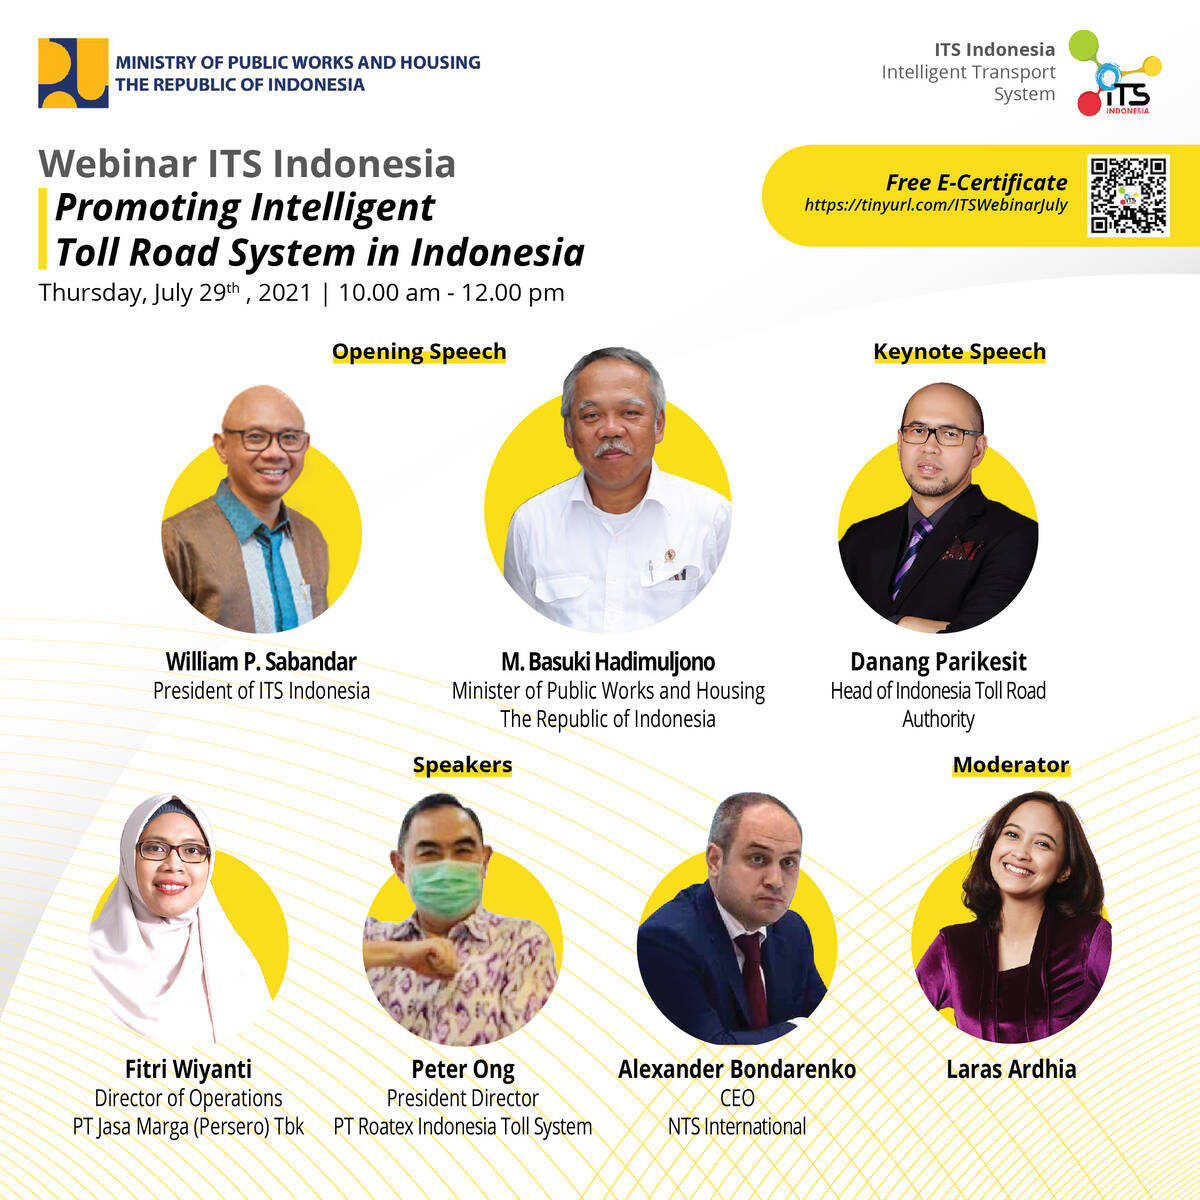 Promoting Intelligent Toll Road System in Indonesia